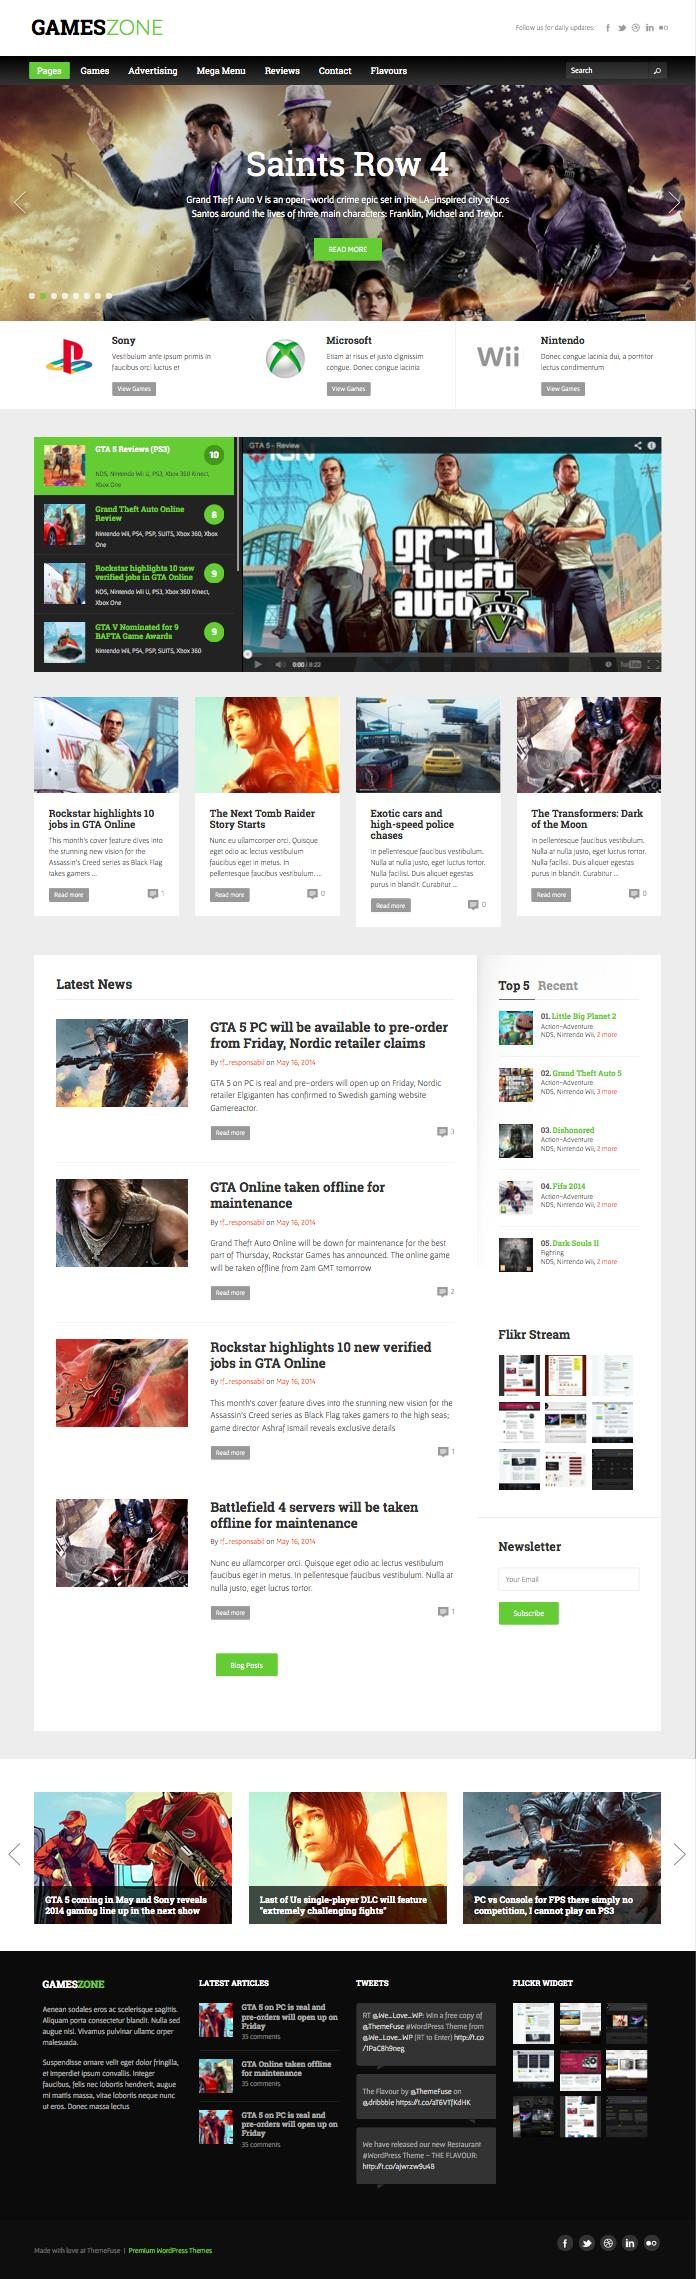 GamesZone WordPress Game Magazine Theme